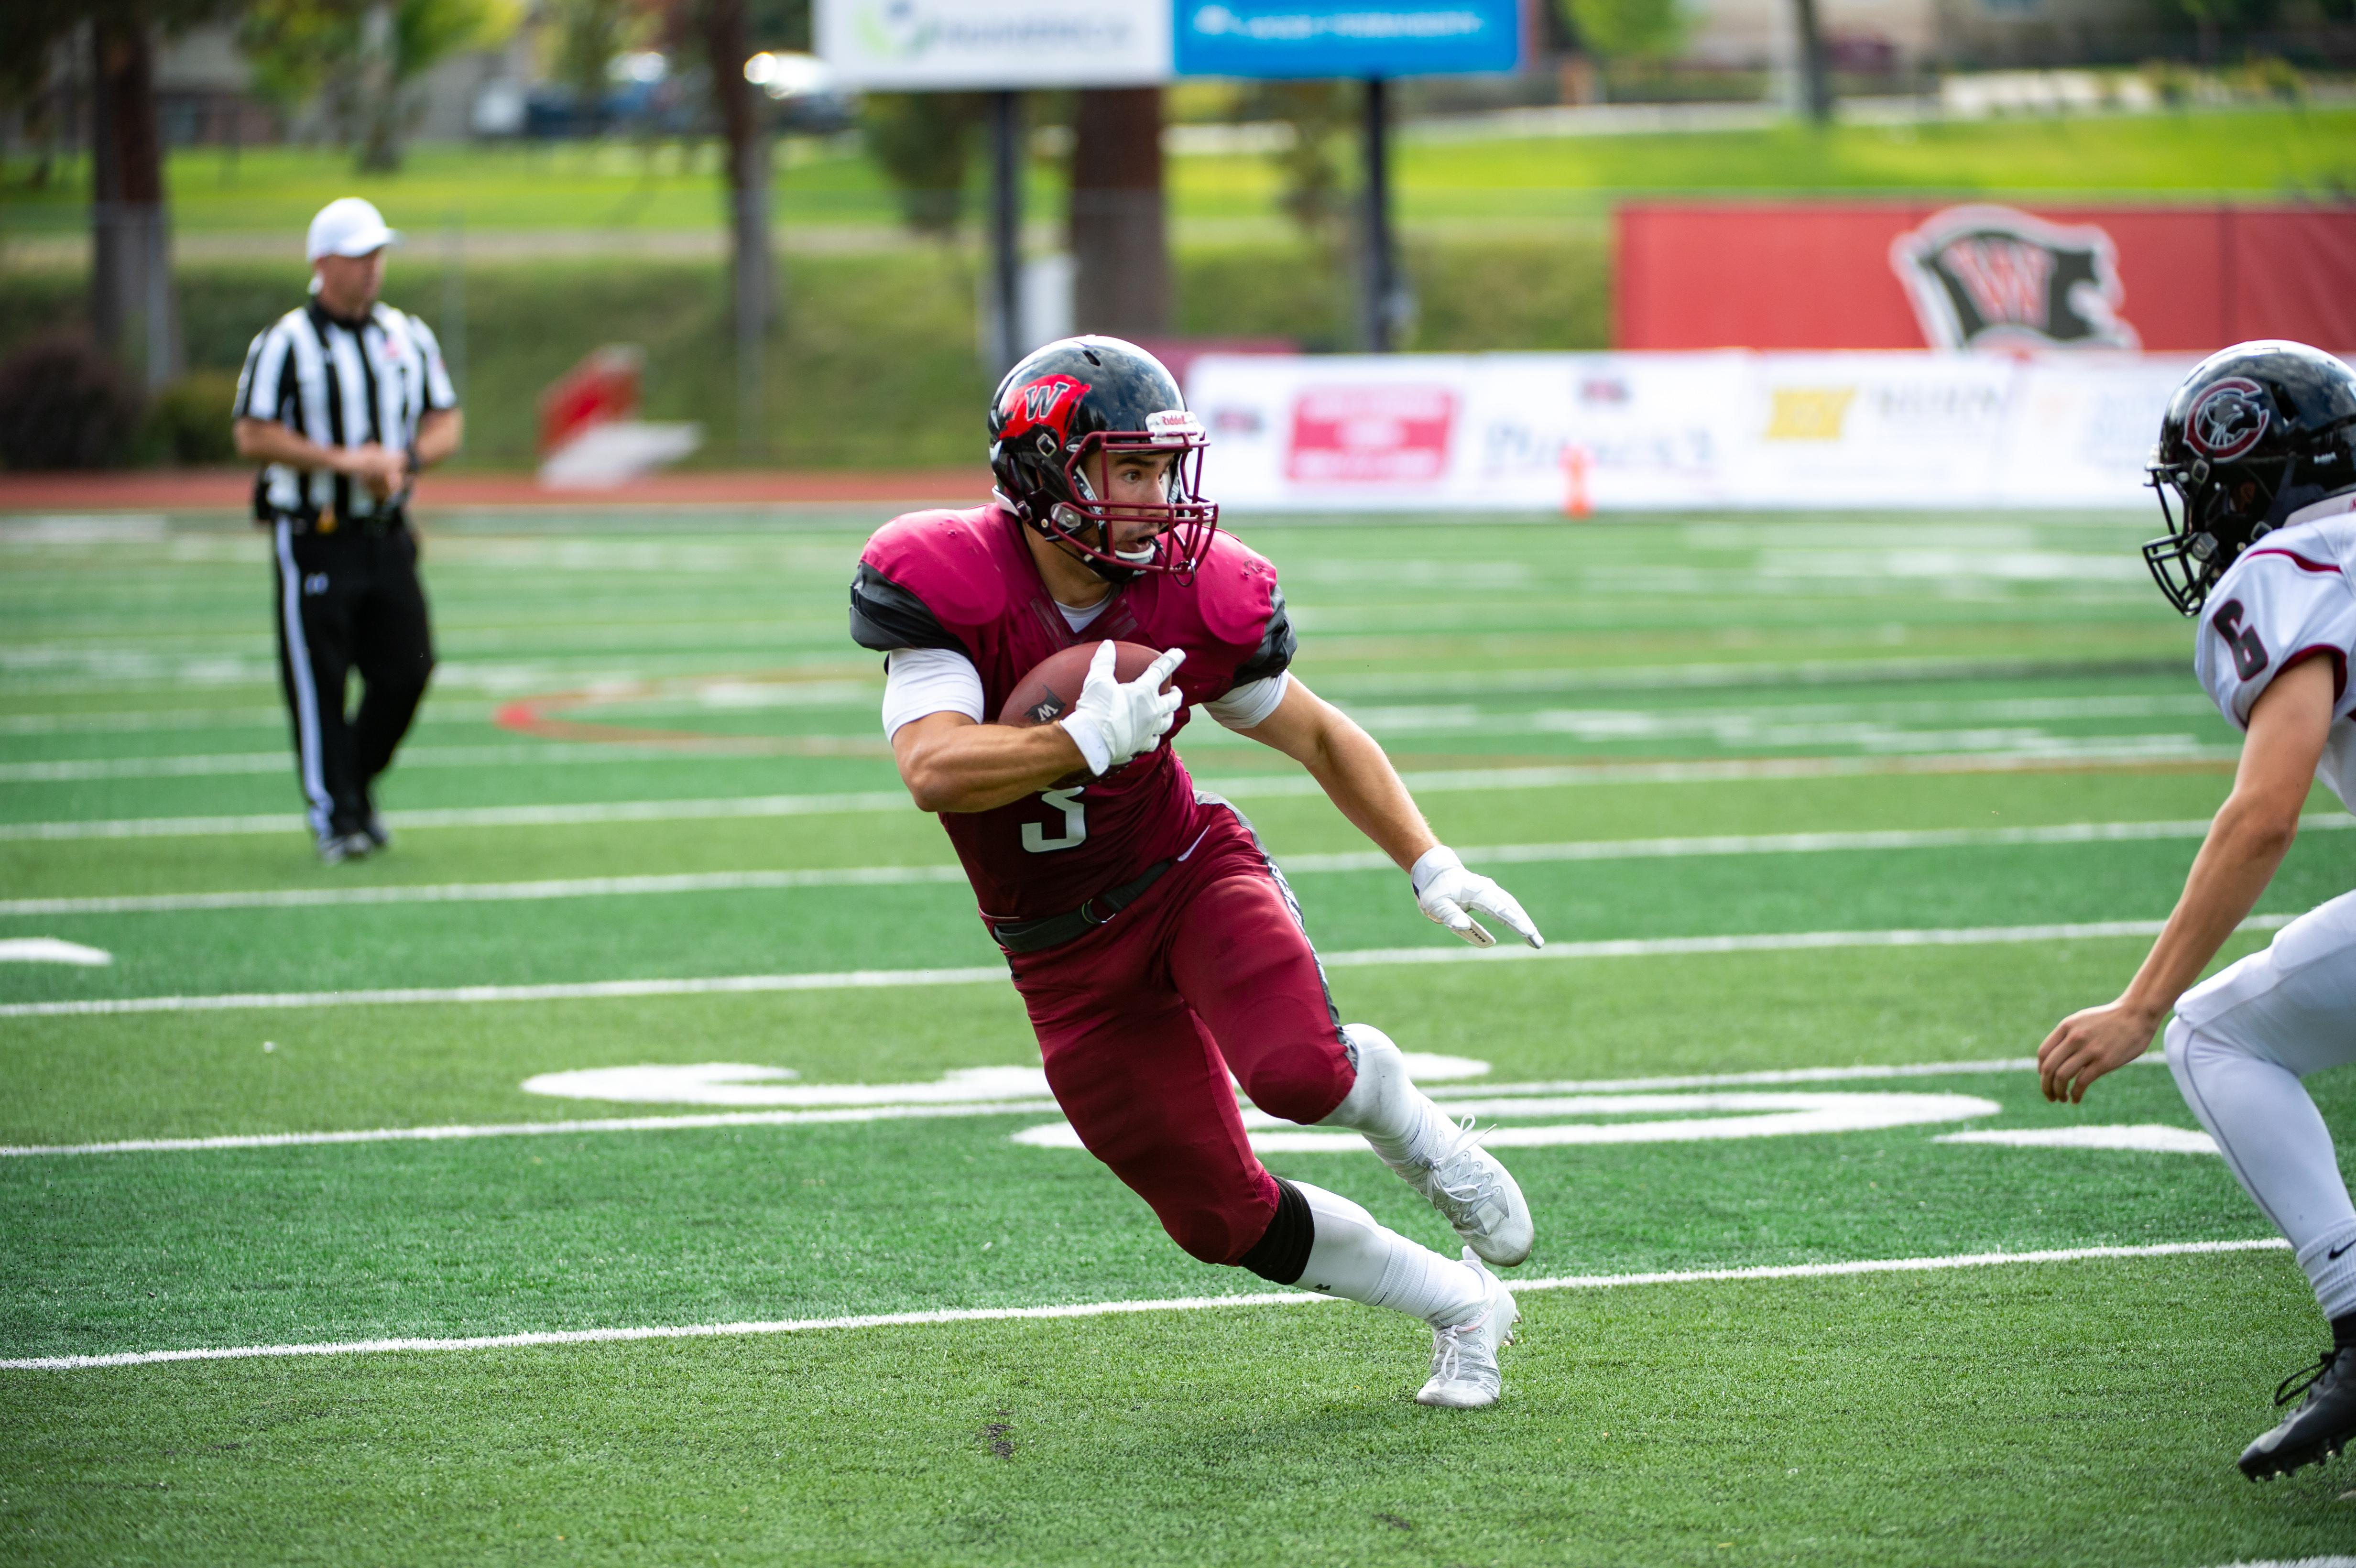 Whitworth Football Caps Unique September With Crucial Game Against